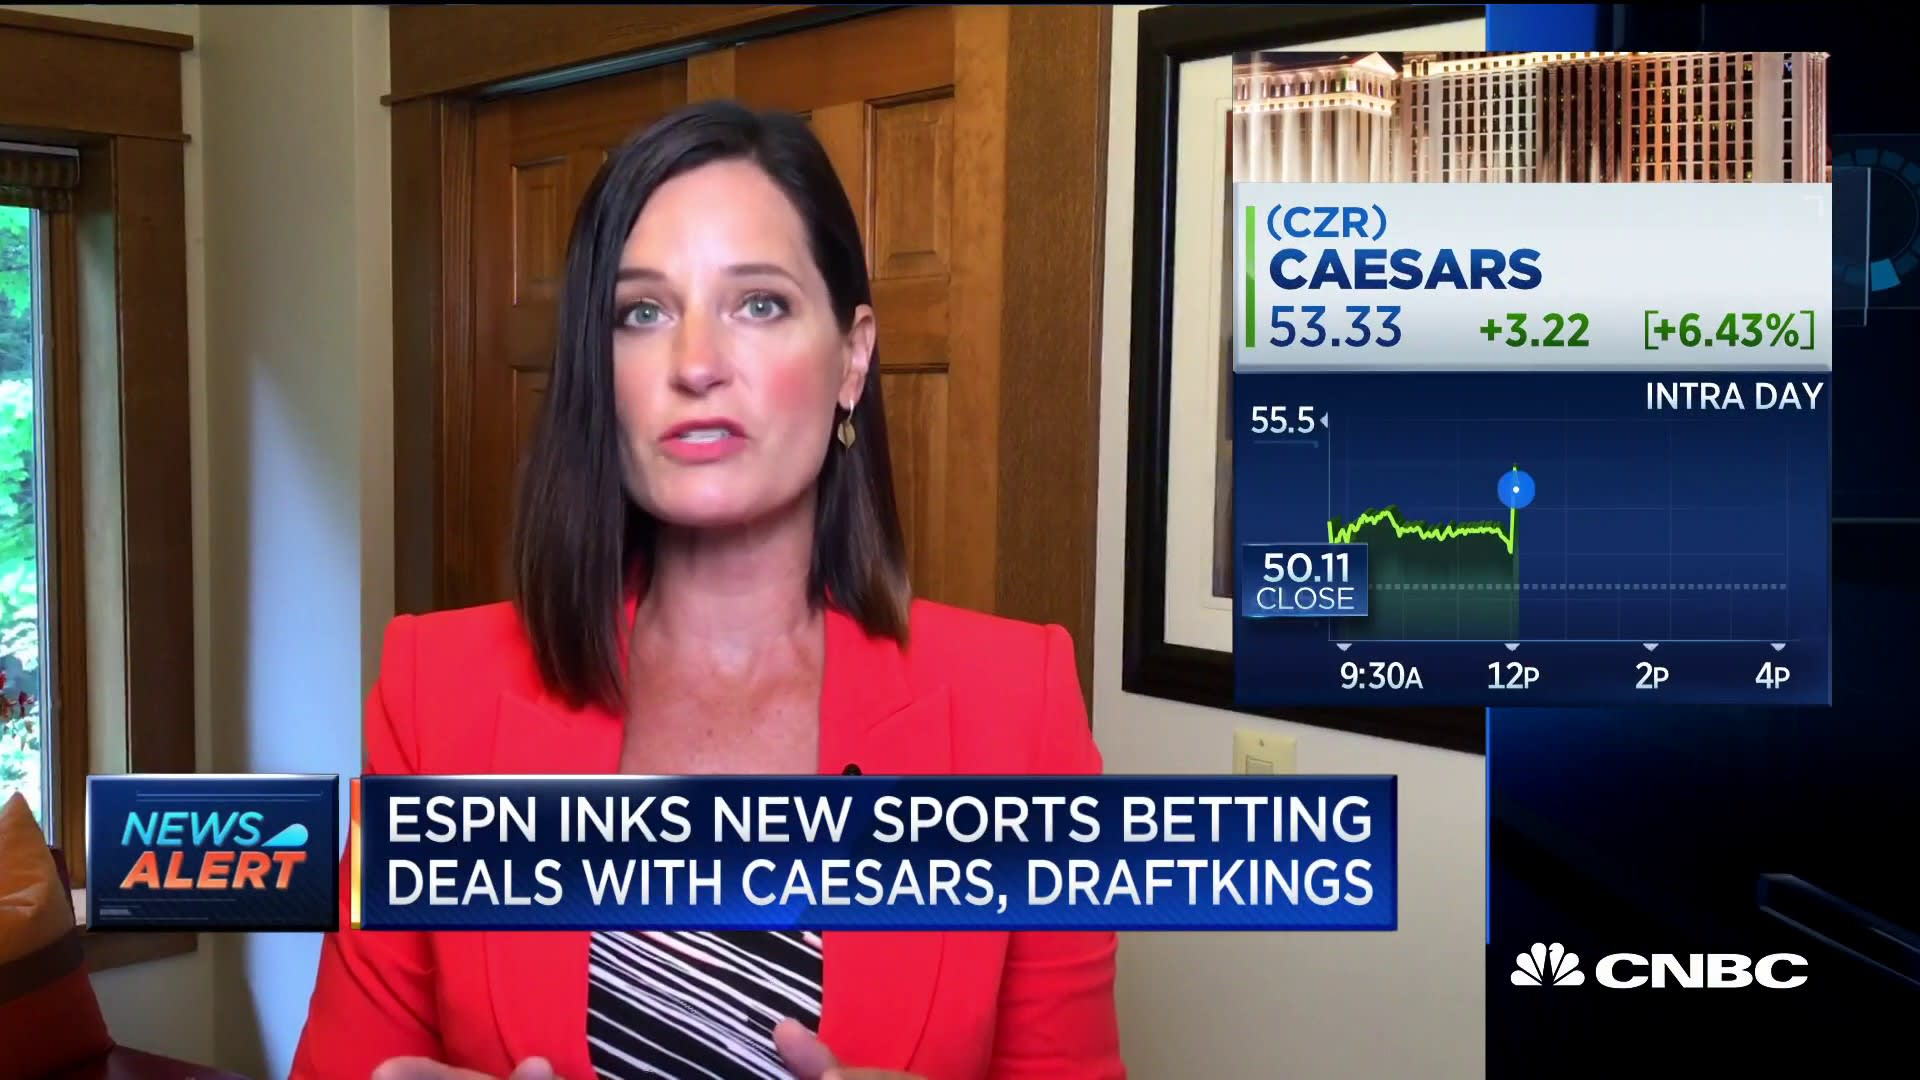 Draftkings Surges After Announcing Espn Deal